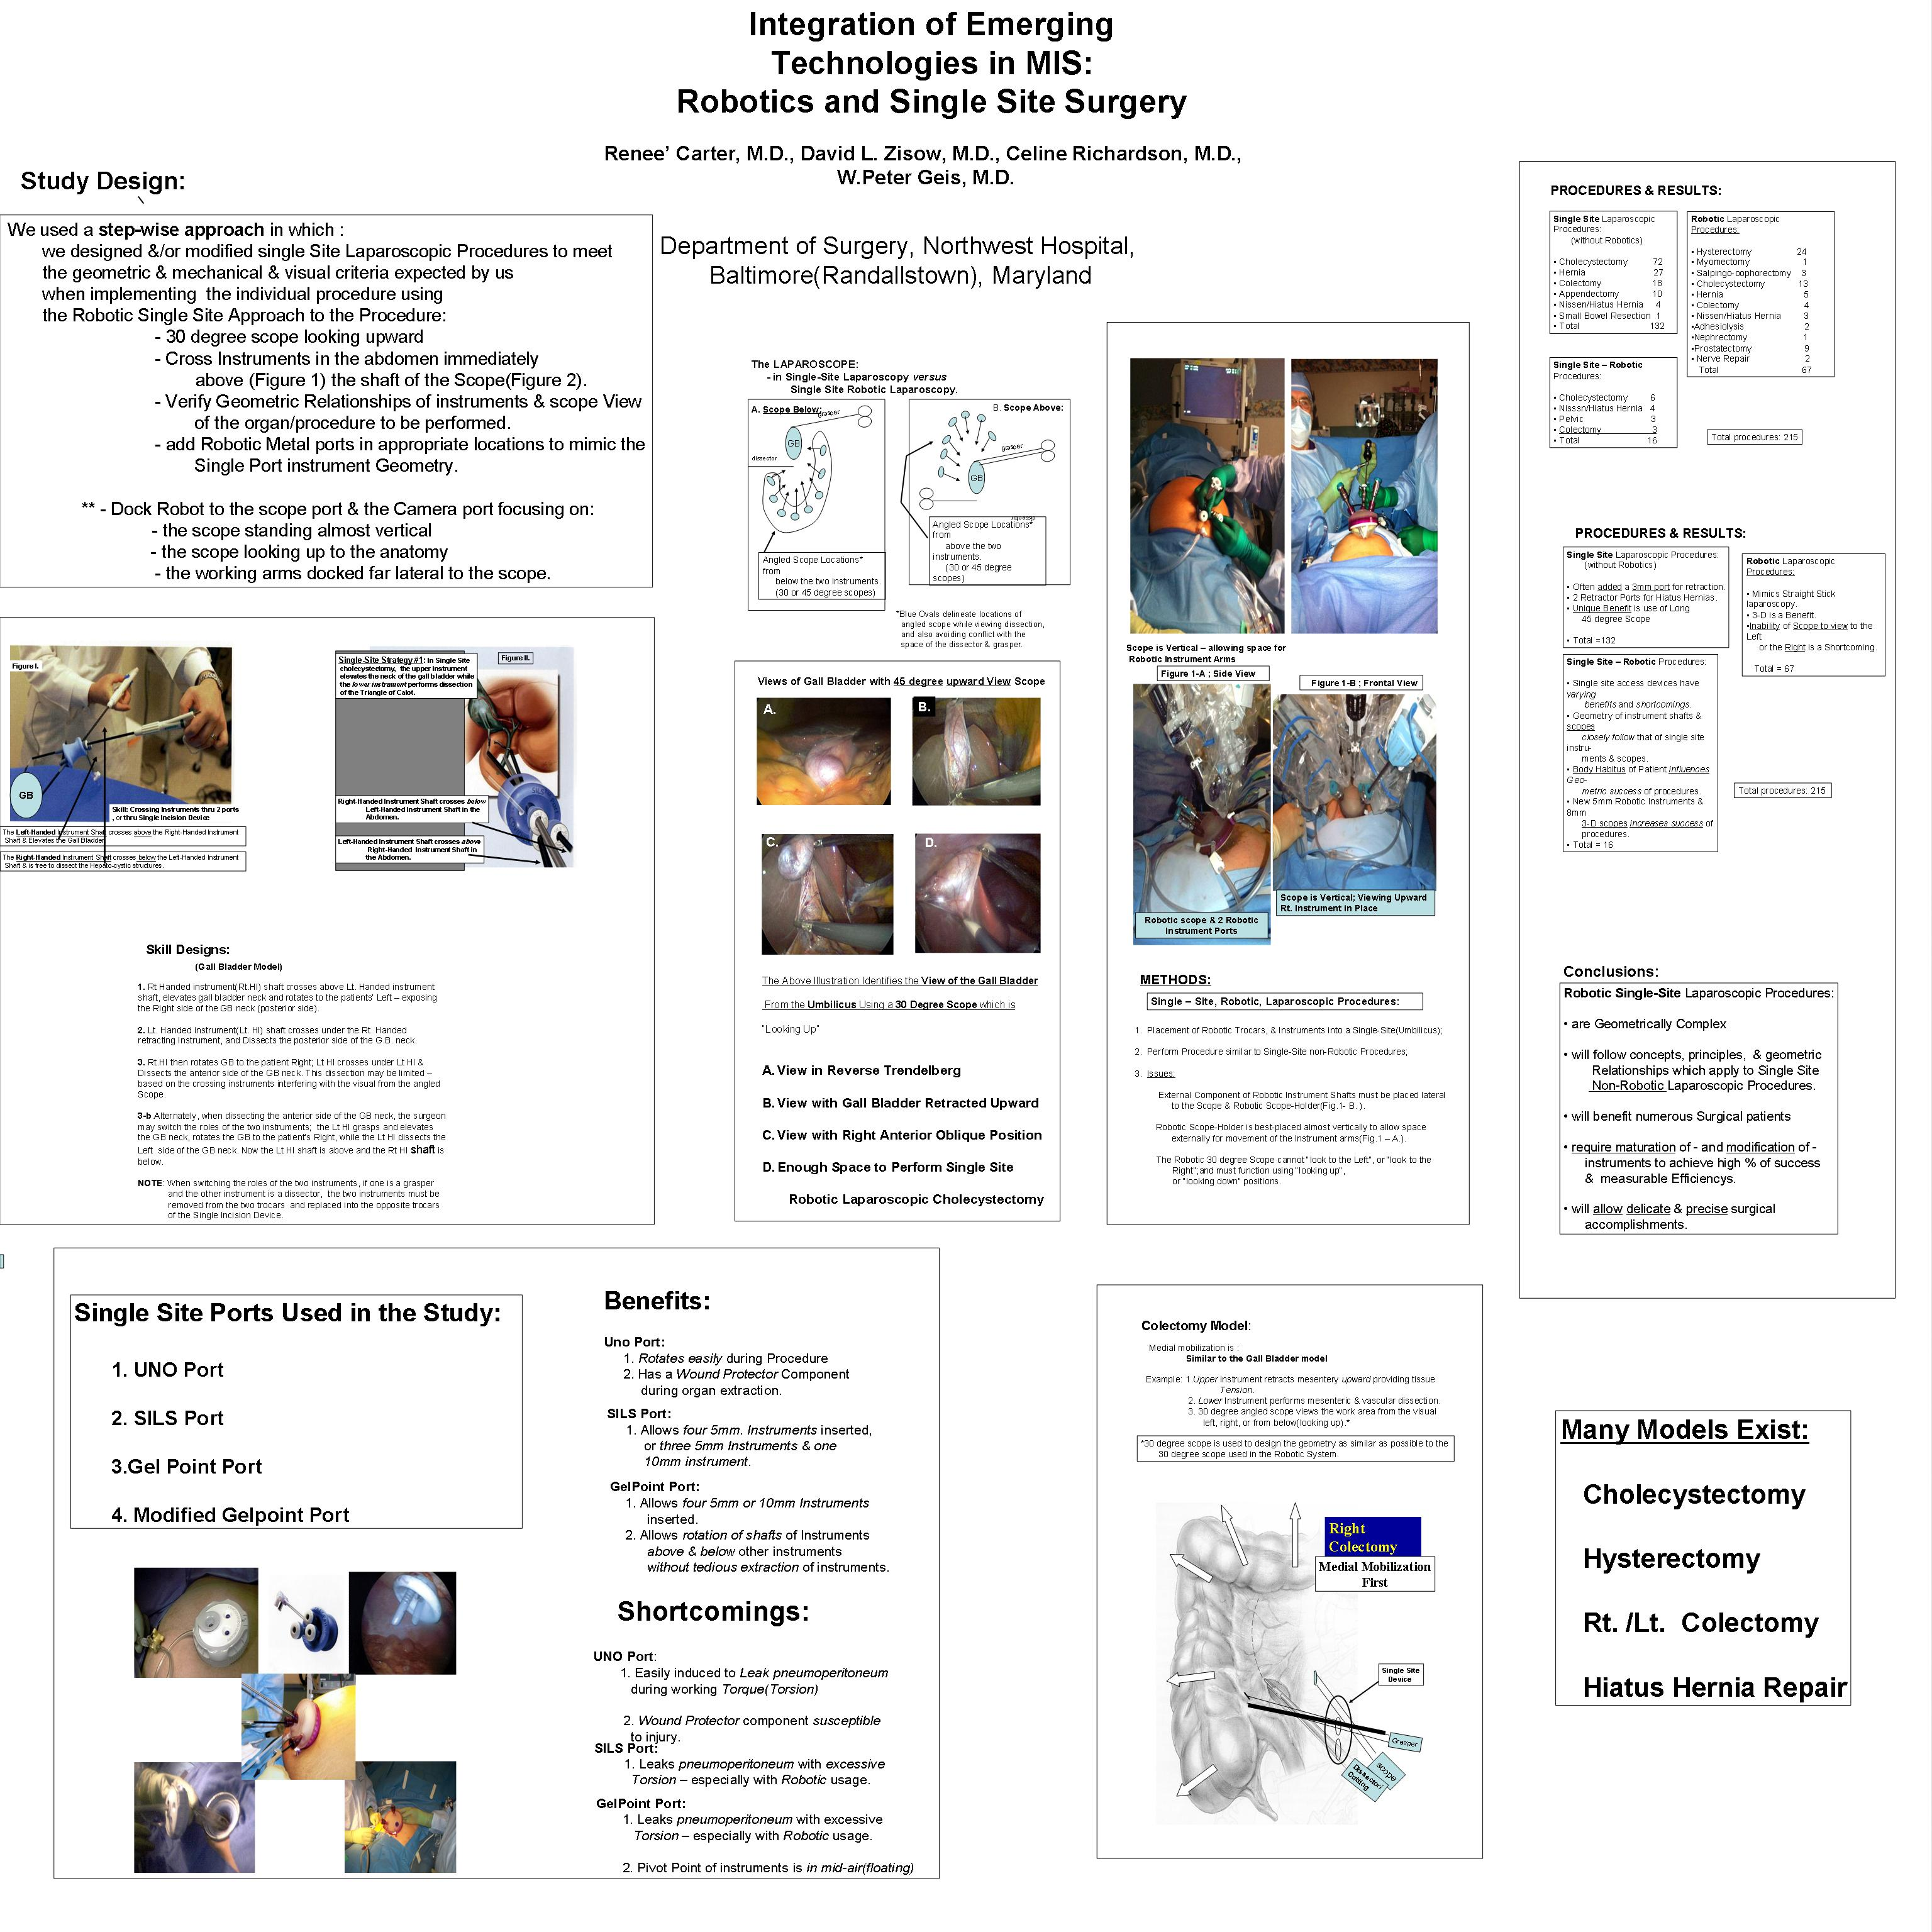 abstract emerging technologies Emerging technologies in emerging markets:  abstract emerging technologies have significant implications and profound consequences for firms,.